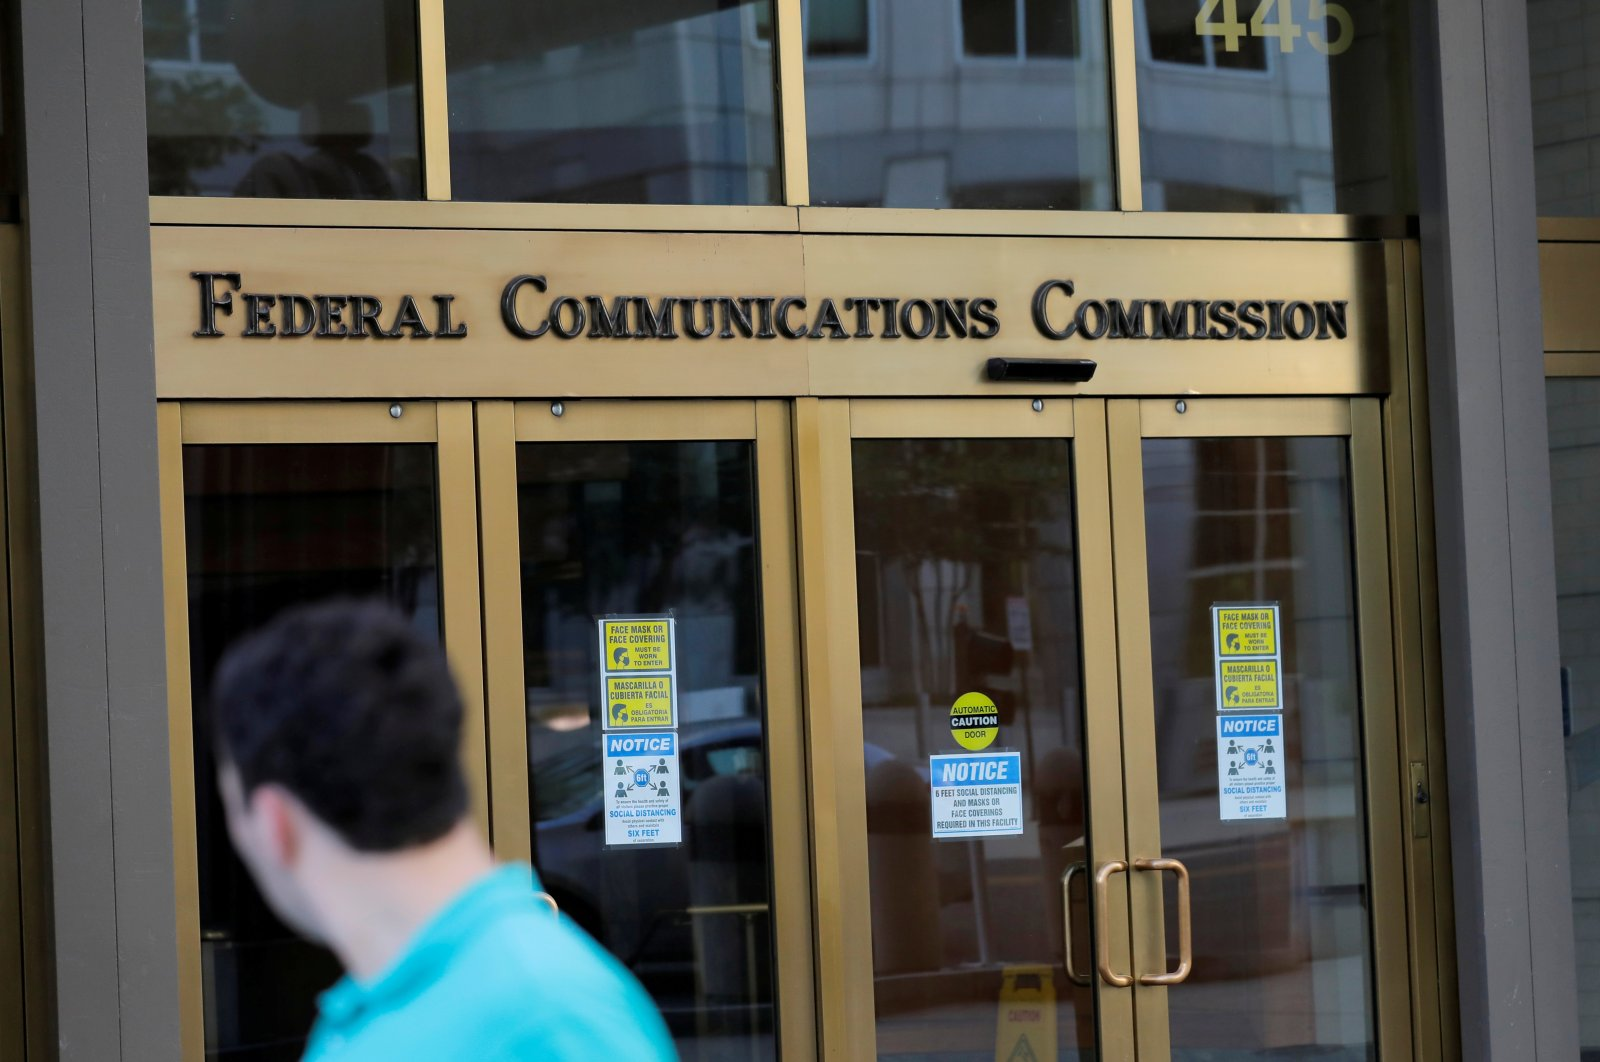 Signage at the headquarters of the Federal Communications Commission in Washington, D.C., U.S., Aug. 29, 2020. (Reuters Photo)